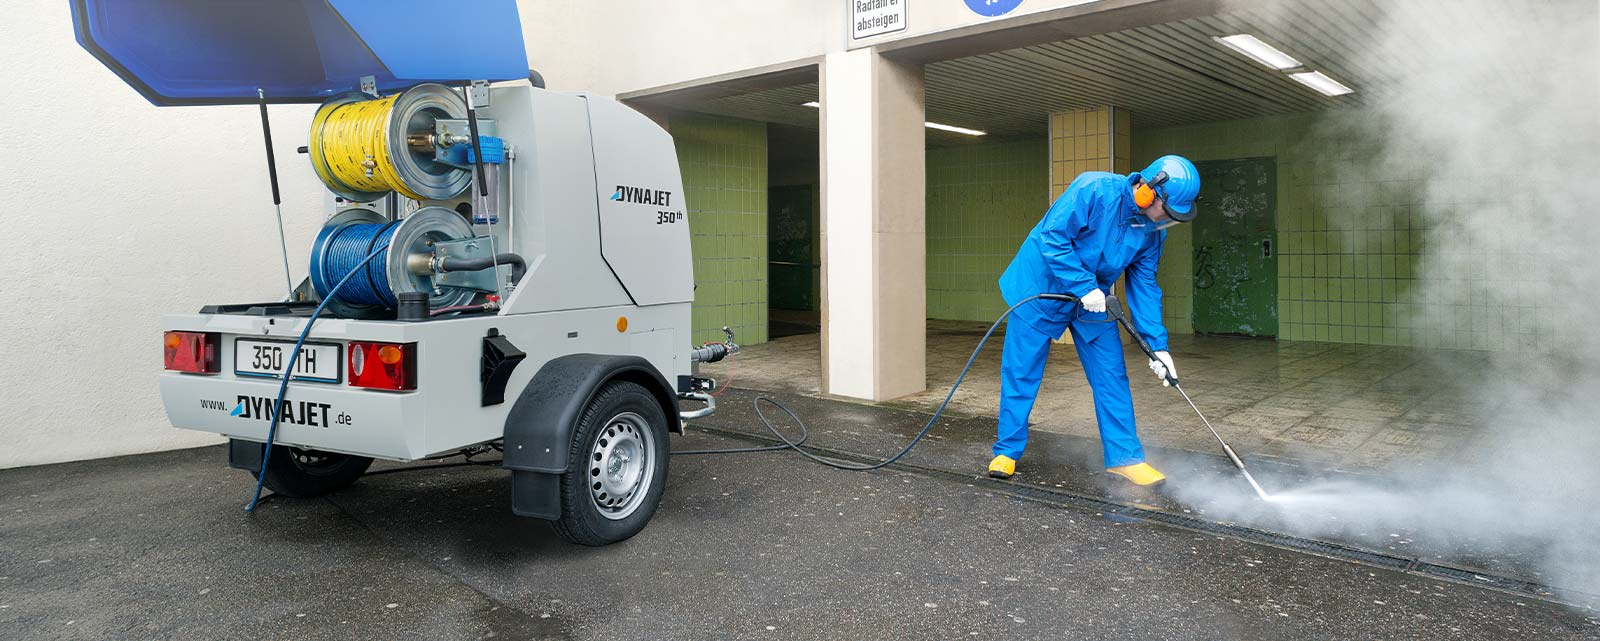 DYNAJET specialises in the high cleaning requirements of municipalities, buildings and cleaning service providers as well as GALA construction